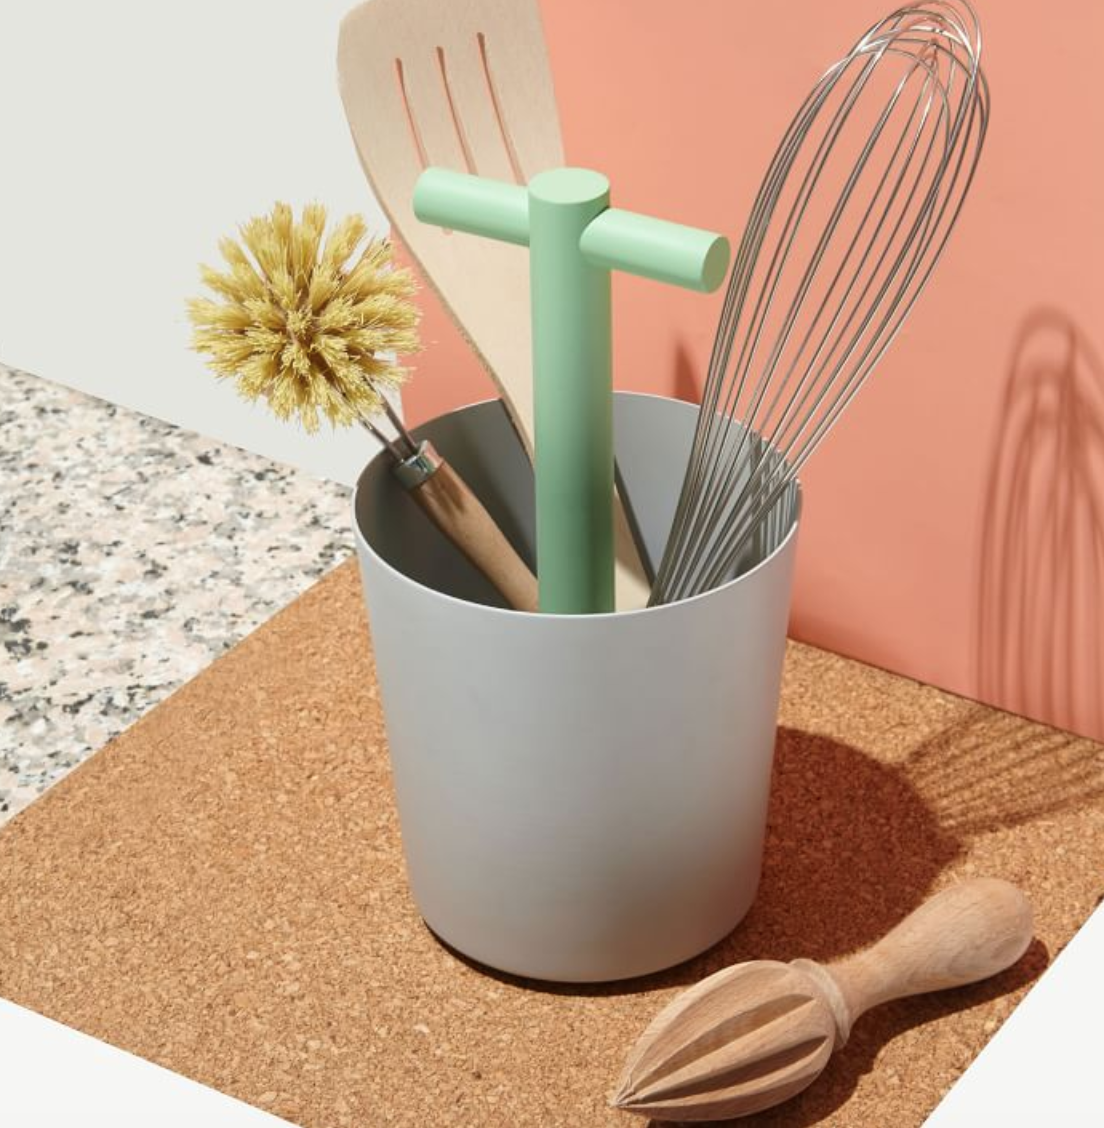 Good Thing General Series Storage - This cheery storage vessel comes in bowl, bucket, and tray form with a clever handle. I could see the bucket holding utensils and the bowl and tray for onions or fruit on the counter.